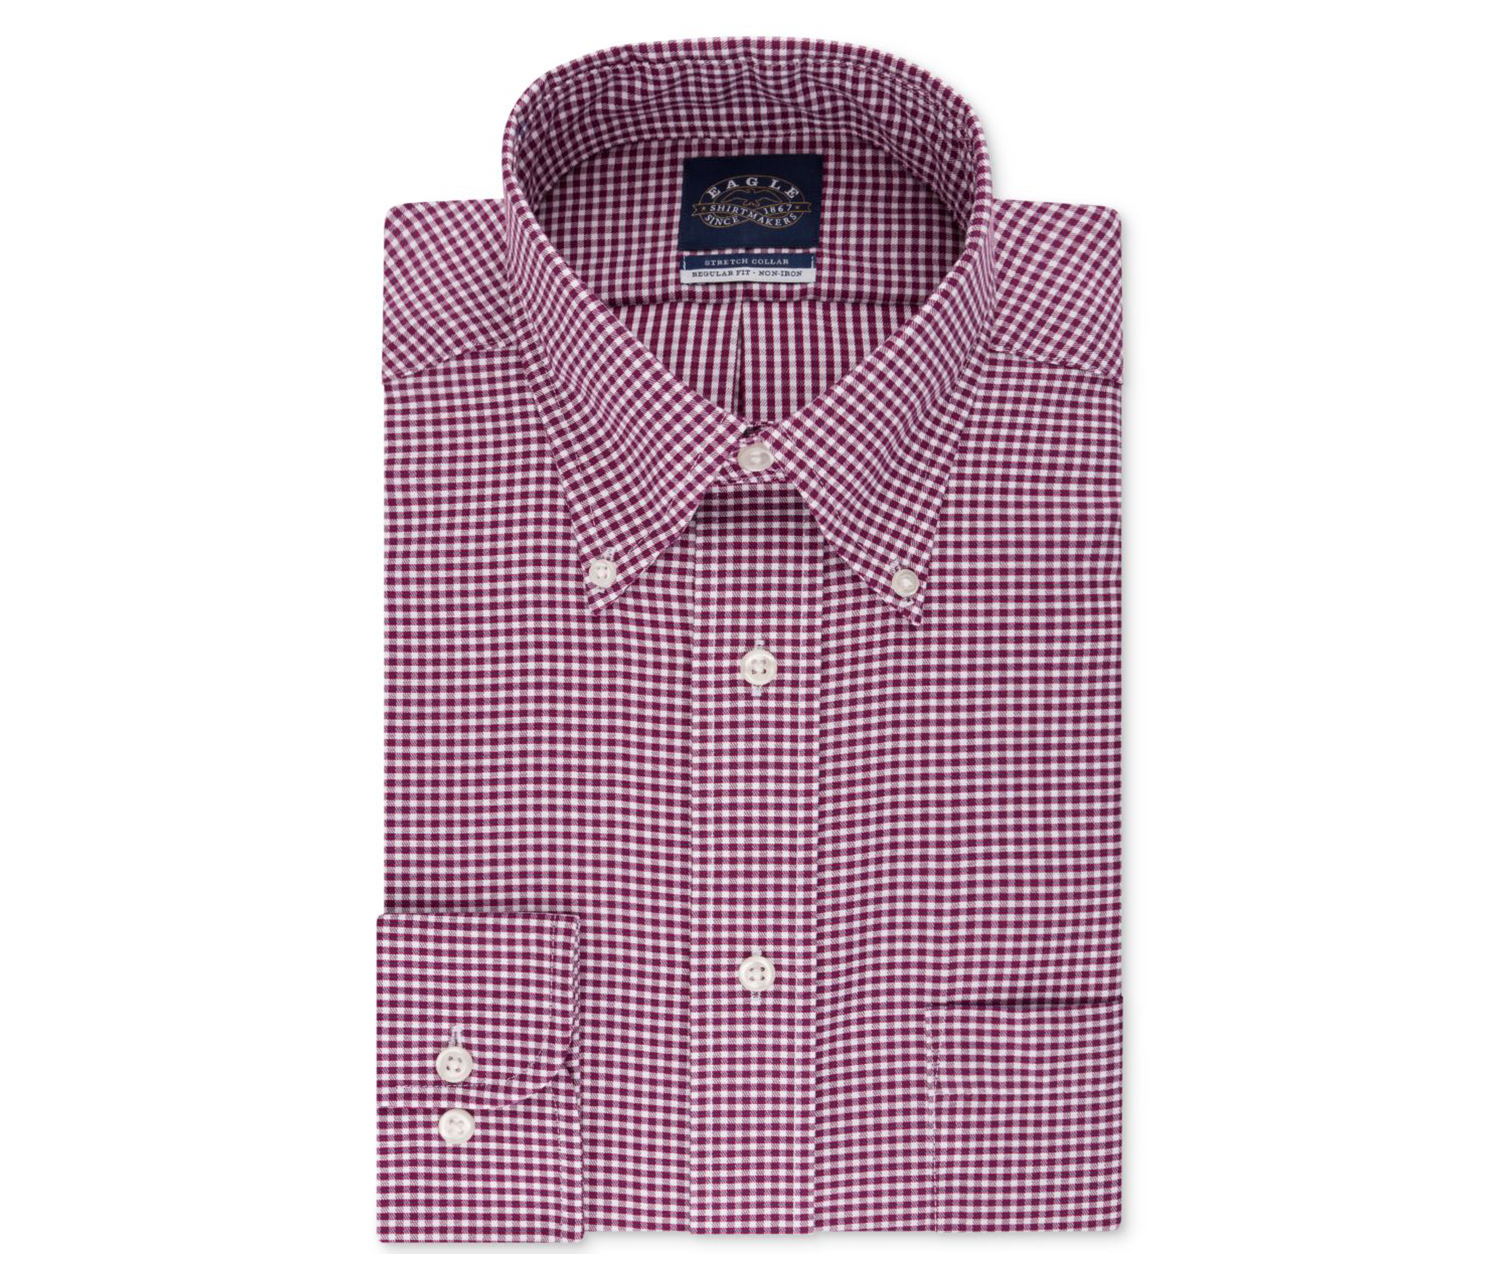 Men's Classic/Regular-Fit Non-Iron Dress Shirt, Burgundy